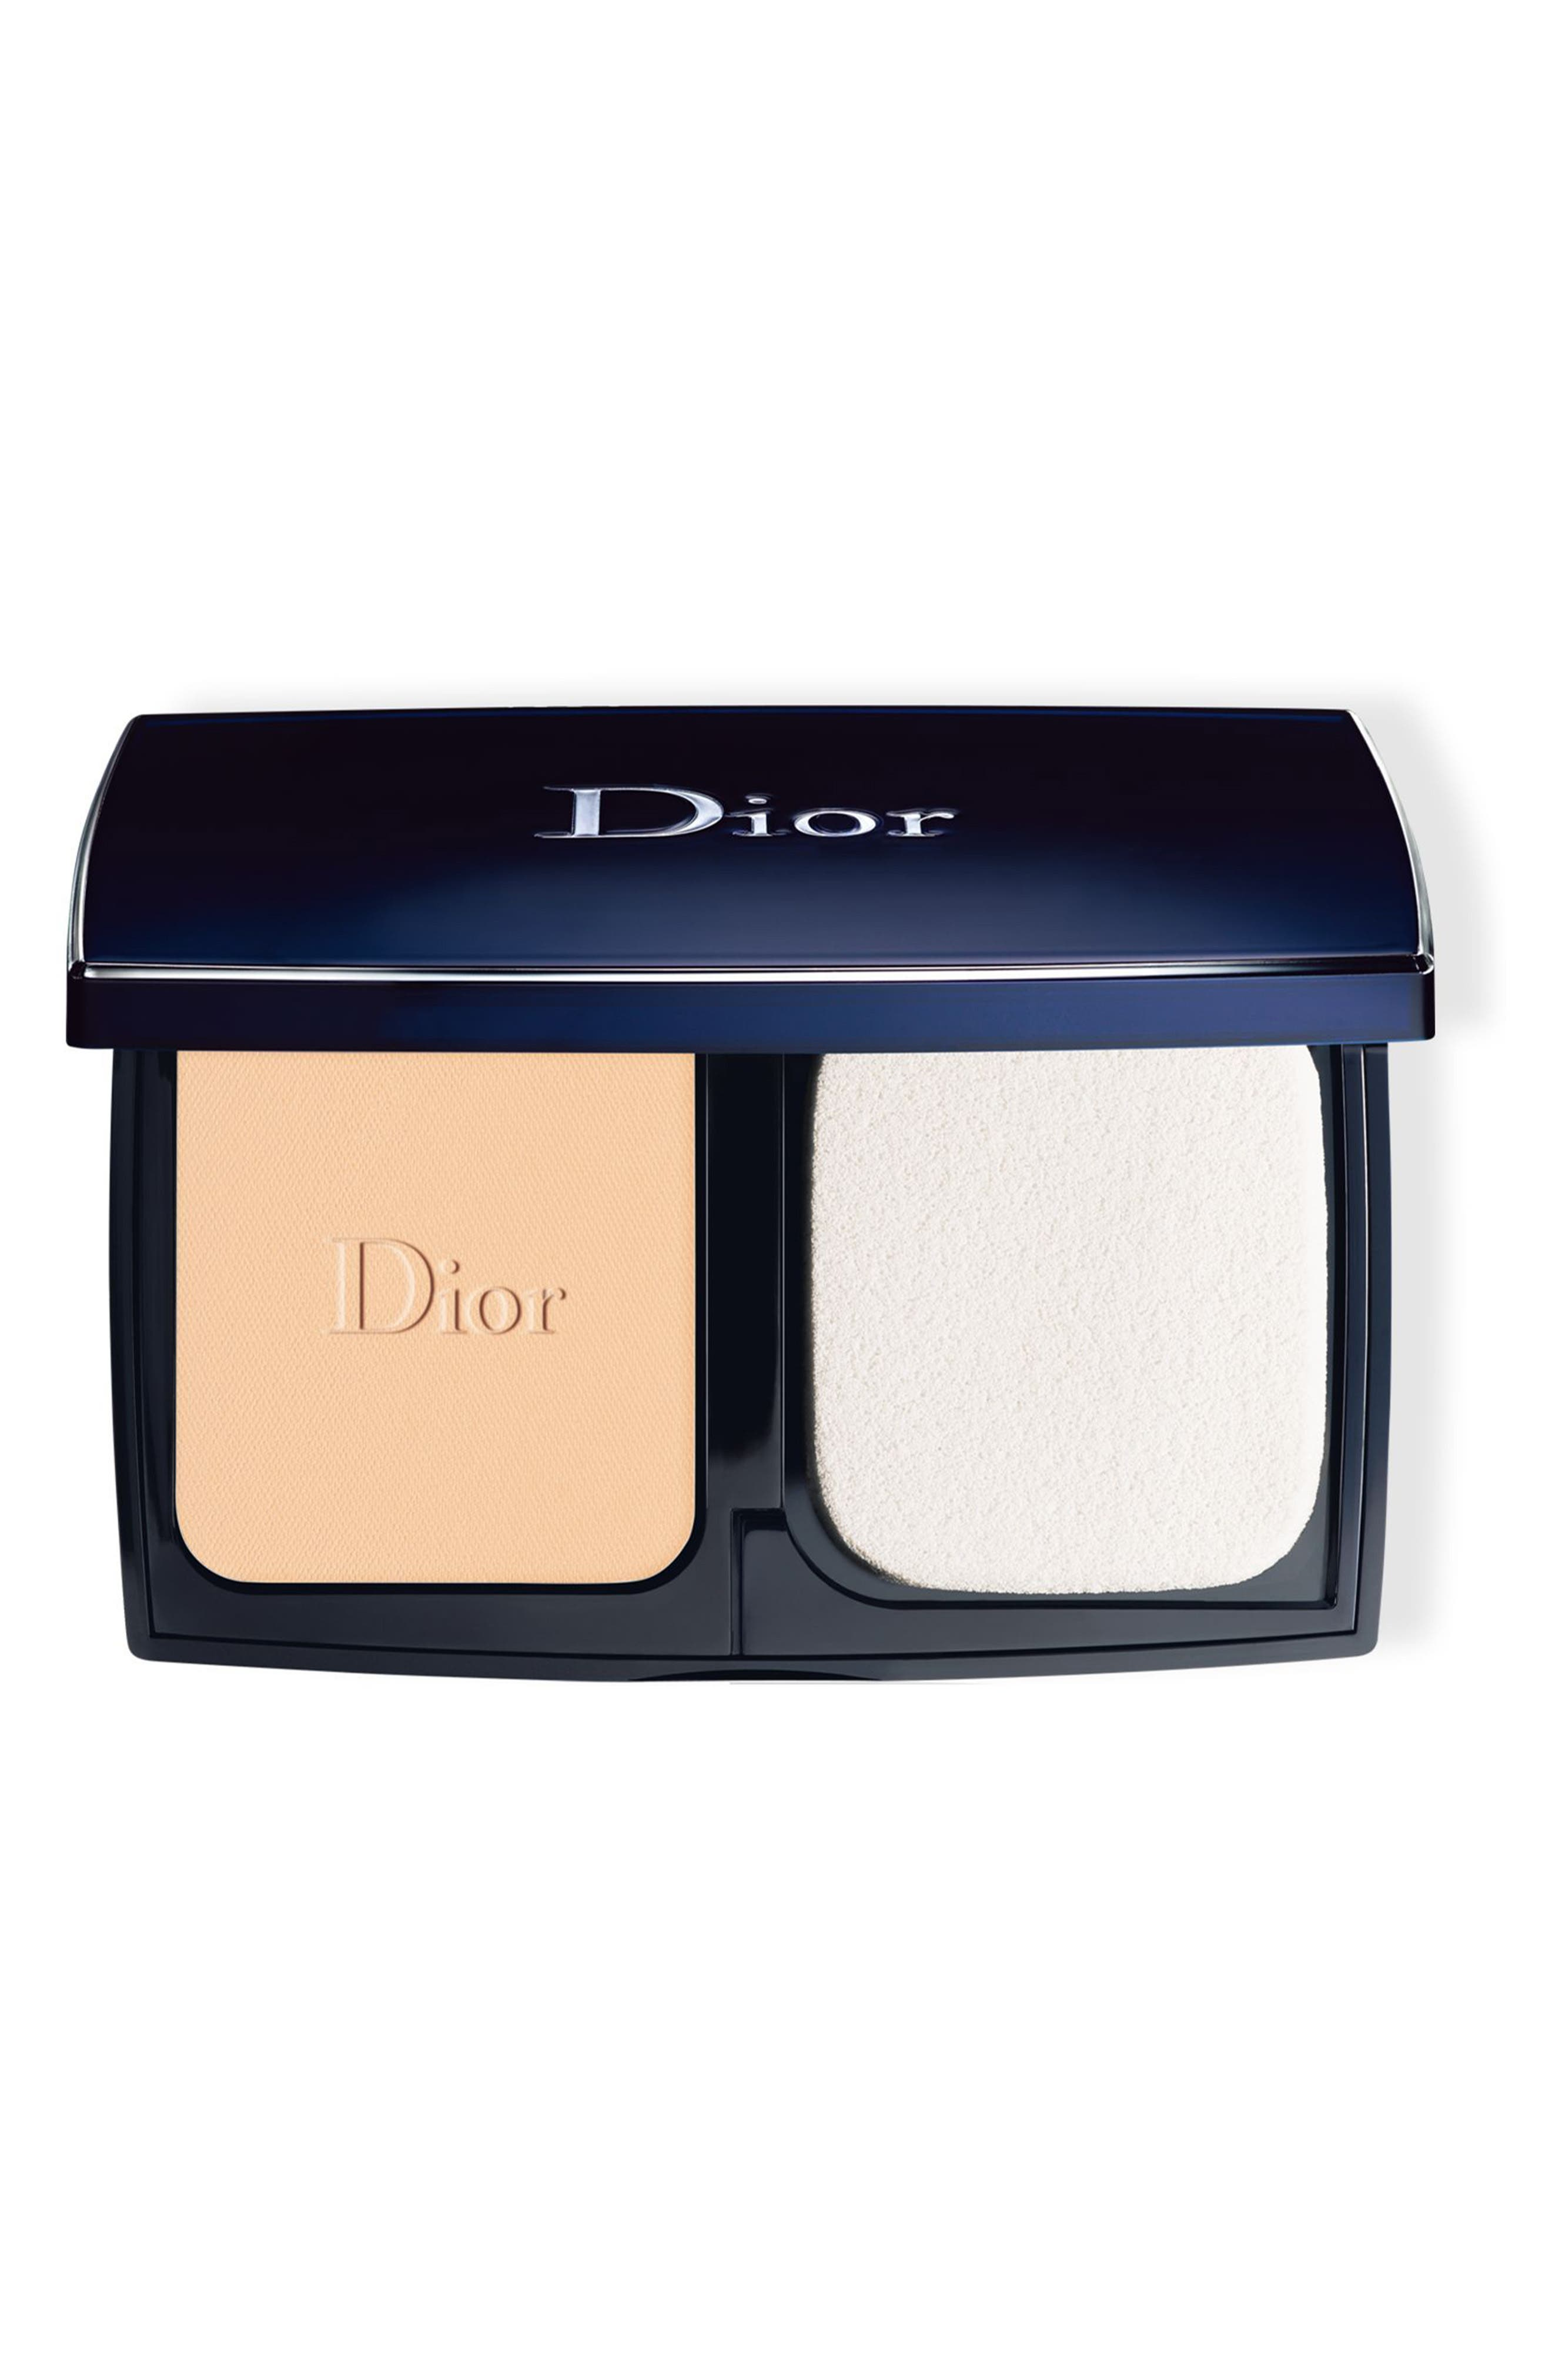 Diorskin Forever Flawless Perfection Fusion Wear Compact Foundation SPF 25,                         Main,                         color, 010